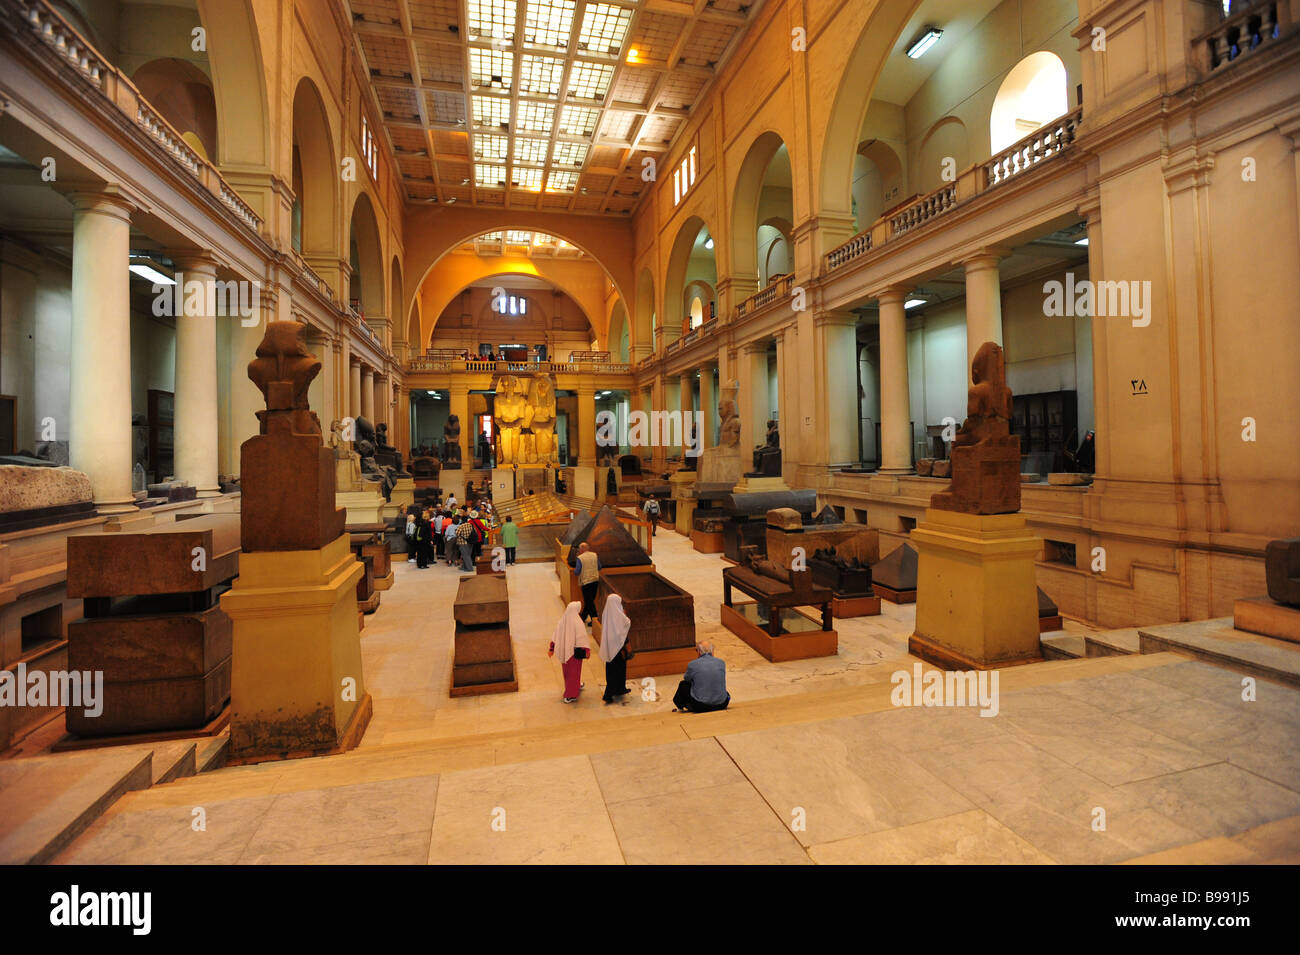 Egypt Cairo The Egyptian Museum Interior Museum Of Antiquities And Ancient  Culture View Of The Main Hall